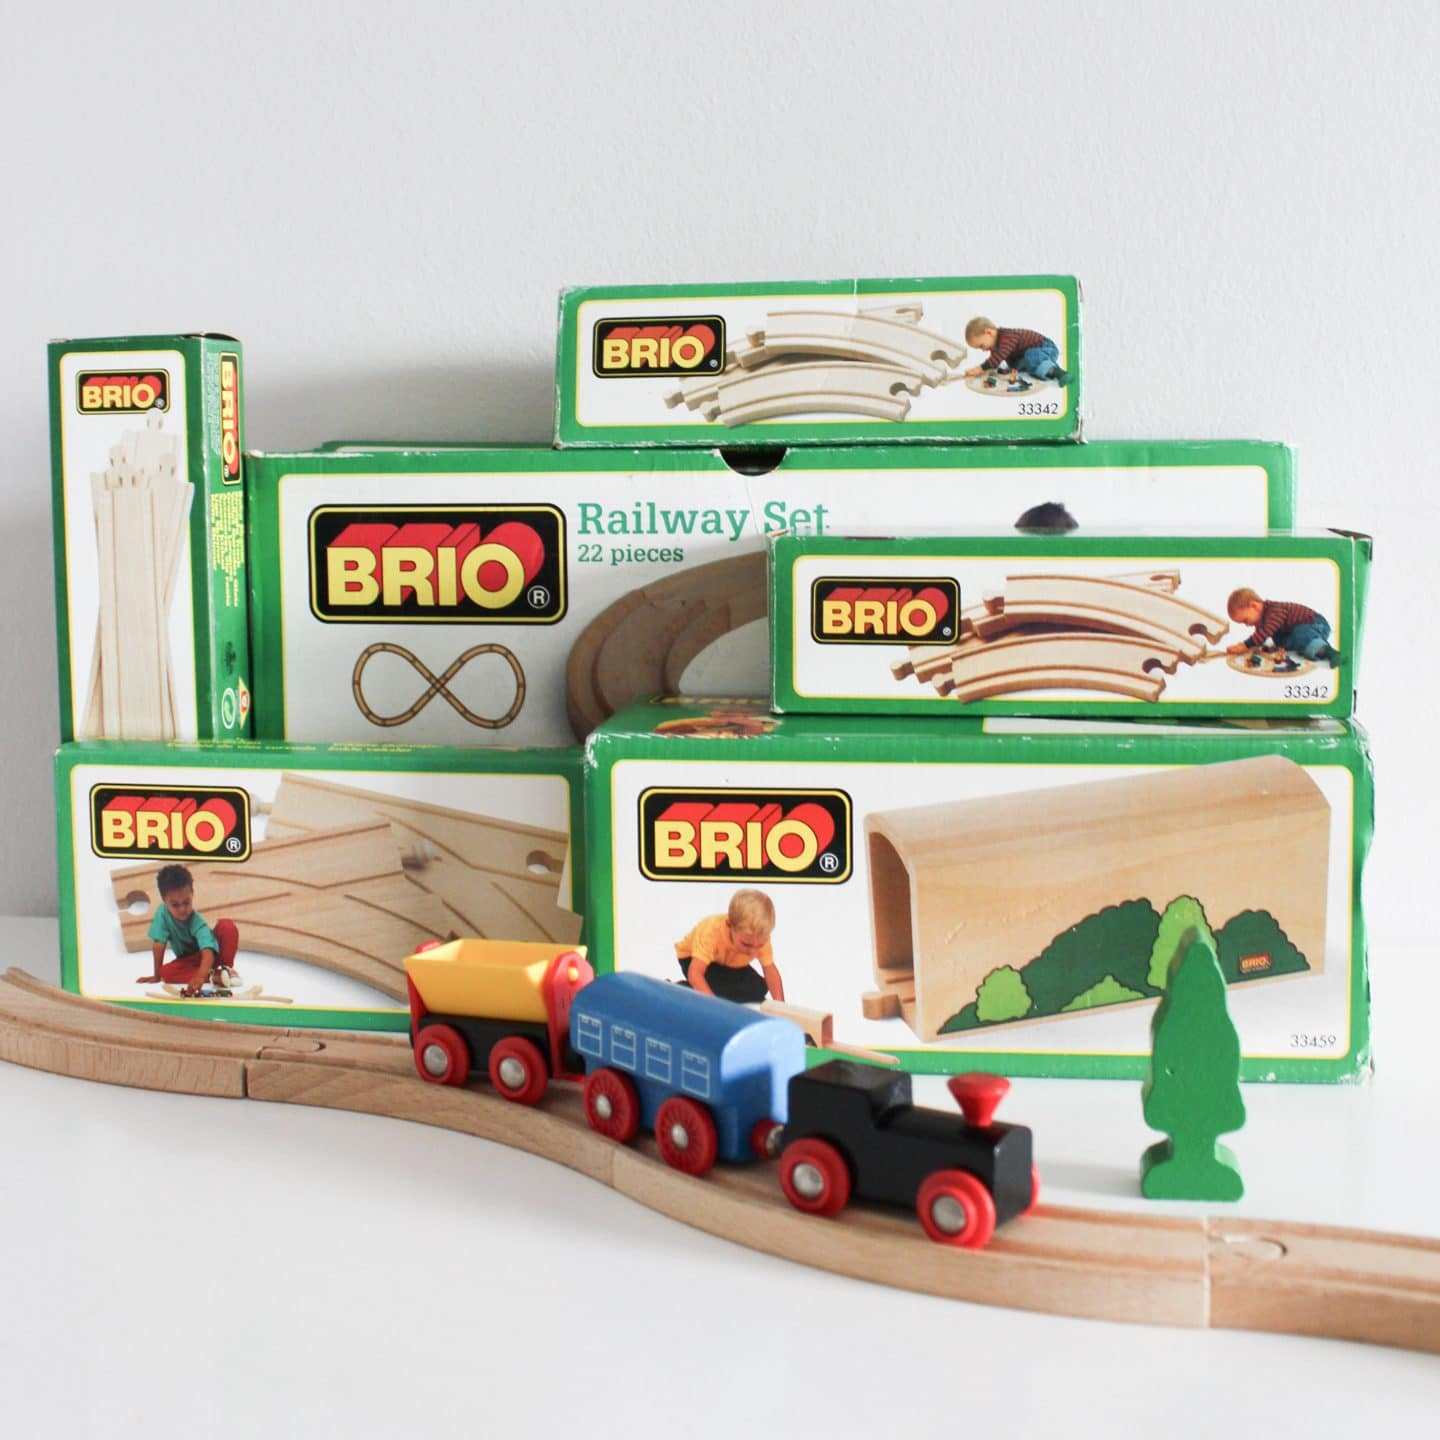 Brio Wooden Train Track with Trains